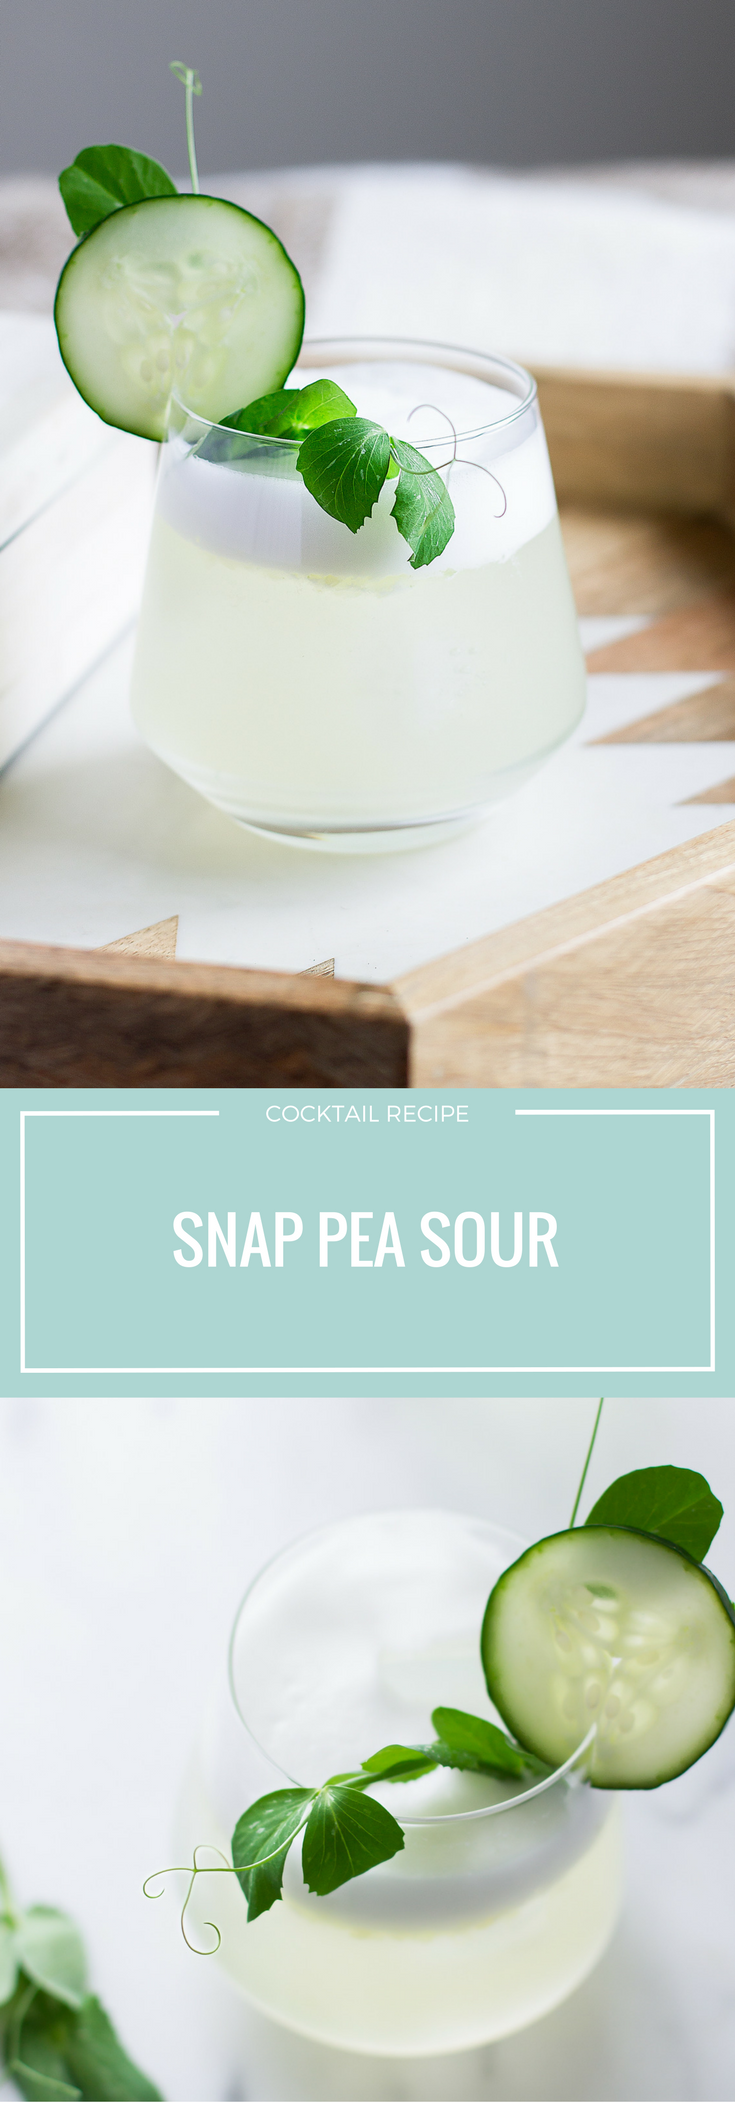 Spring Recipes | Snap Pea | Cocktail | Vodka | Ginger | Tonic | Lemon